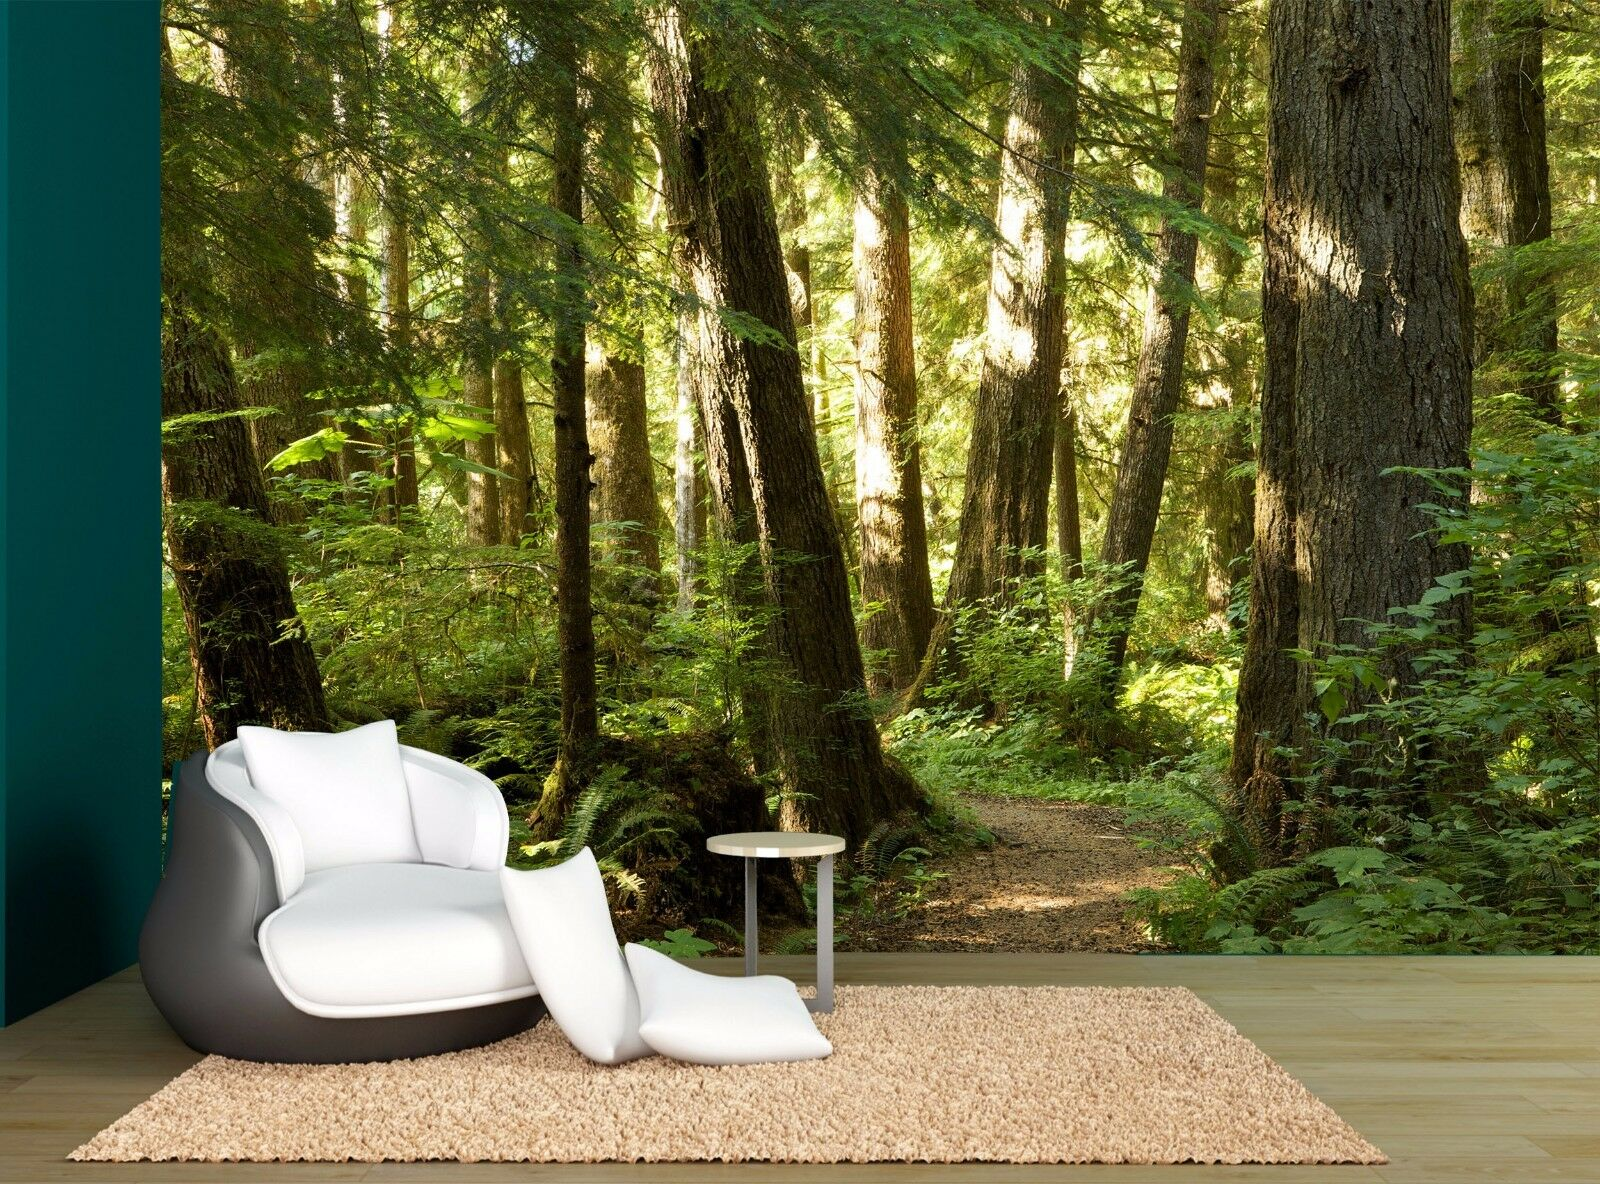 Forest Trees Plants Nature Forests Wall Mural Photo Wallpaper GIANT WALL DECOR